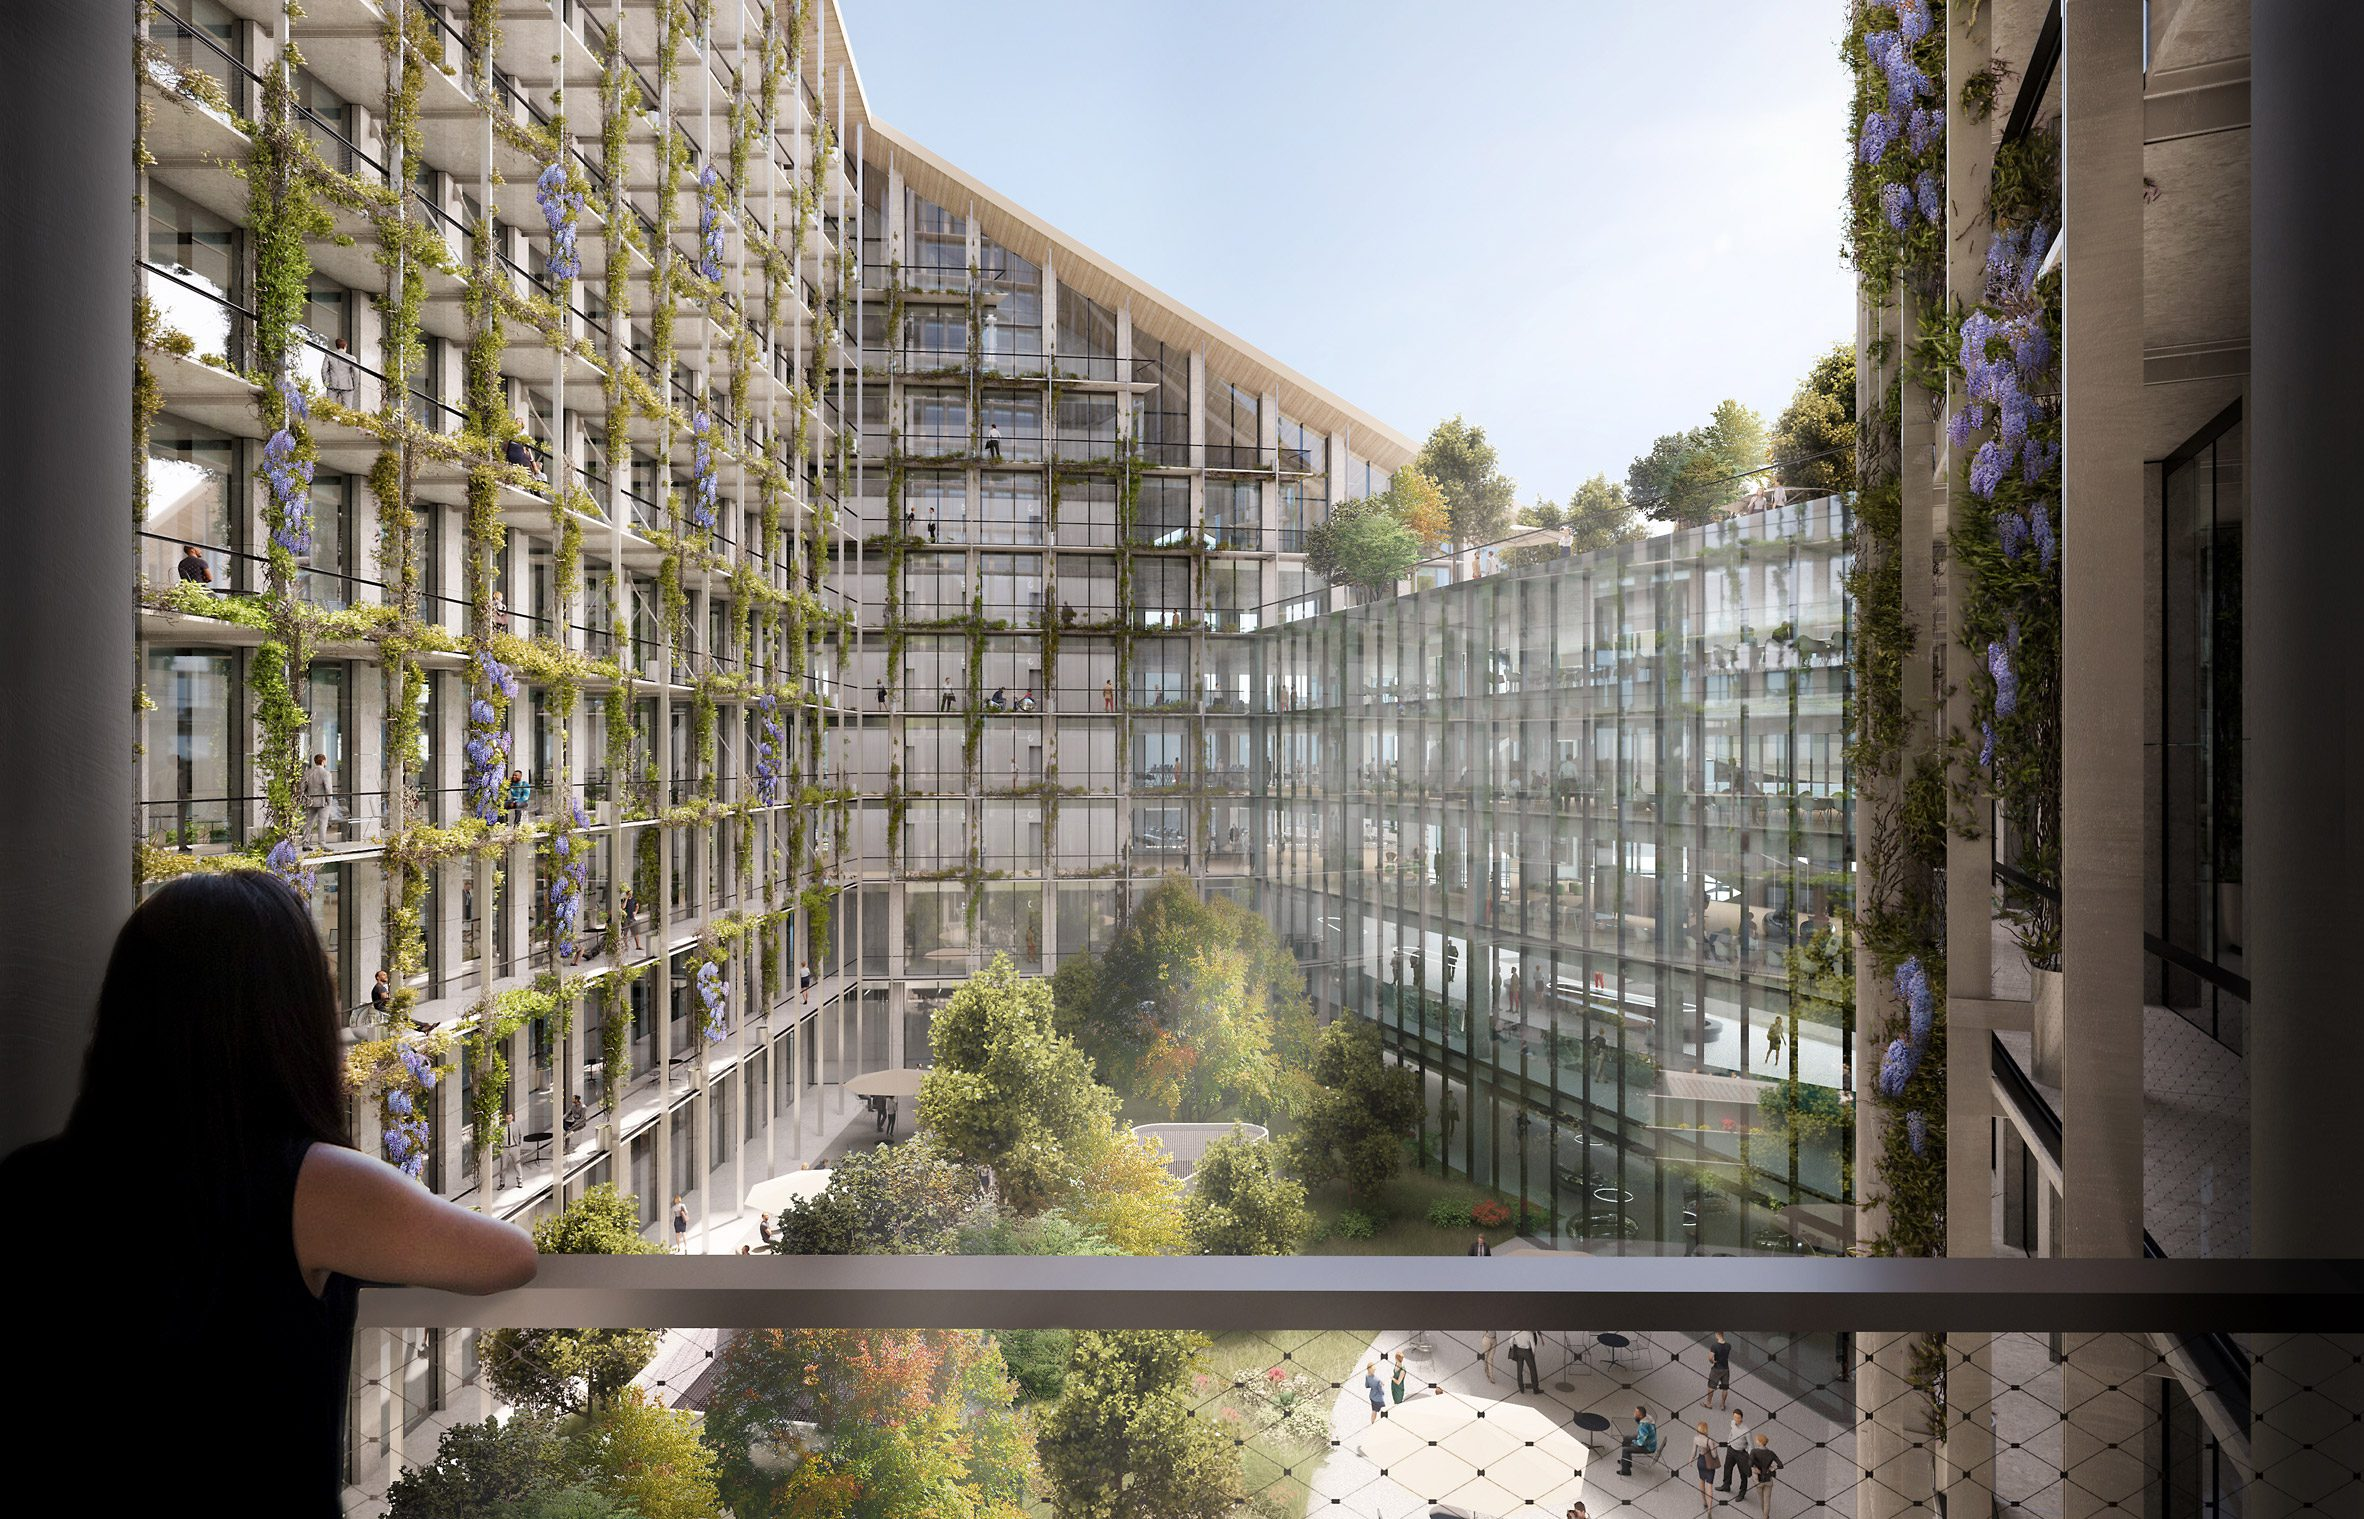 a person stands on the balcony overlooking an internal courtyard within the CityWave building